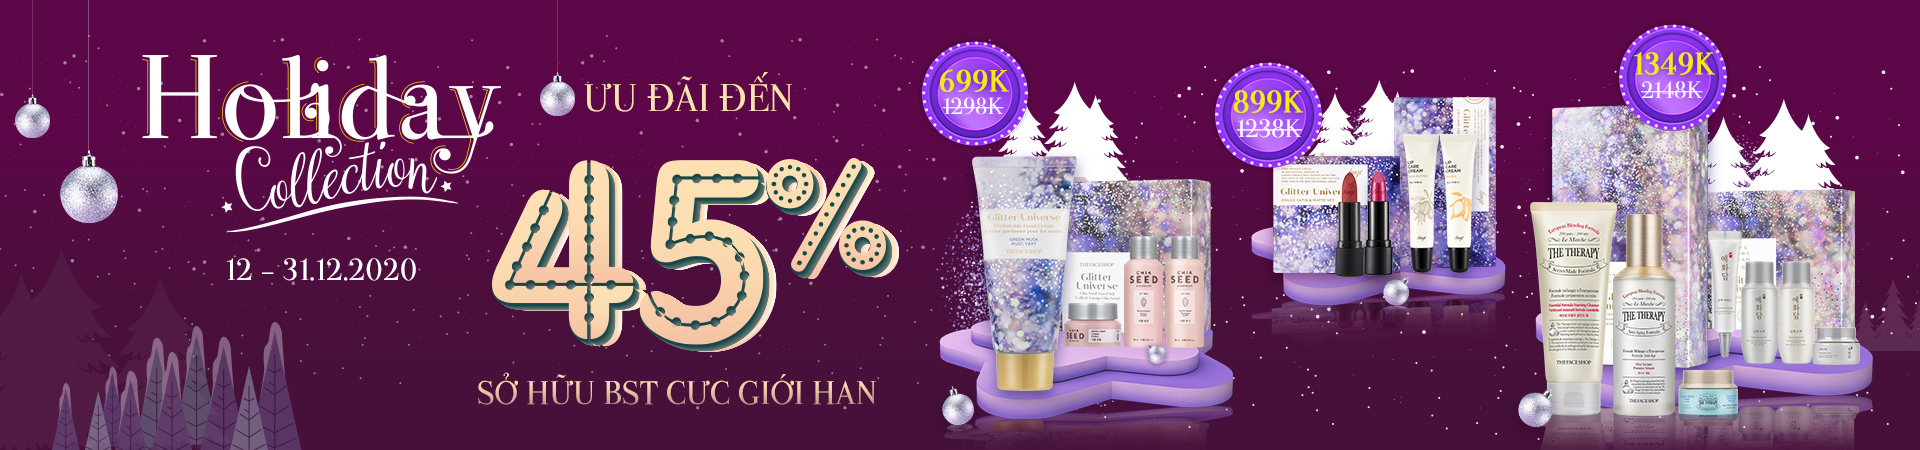 HOLIDAY COLLECTION - GIẢM ĐẾN 45%